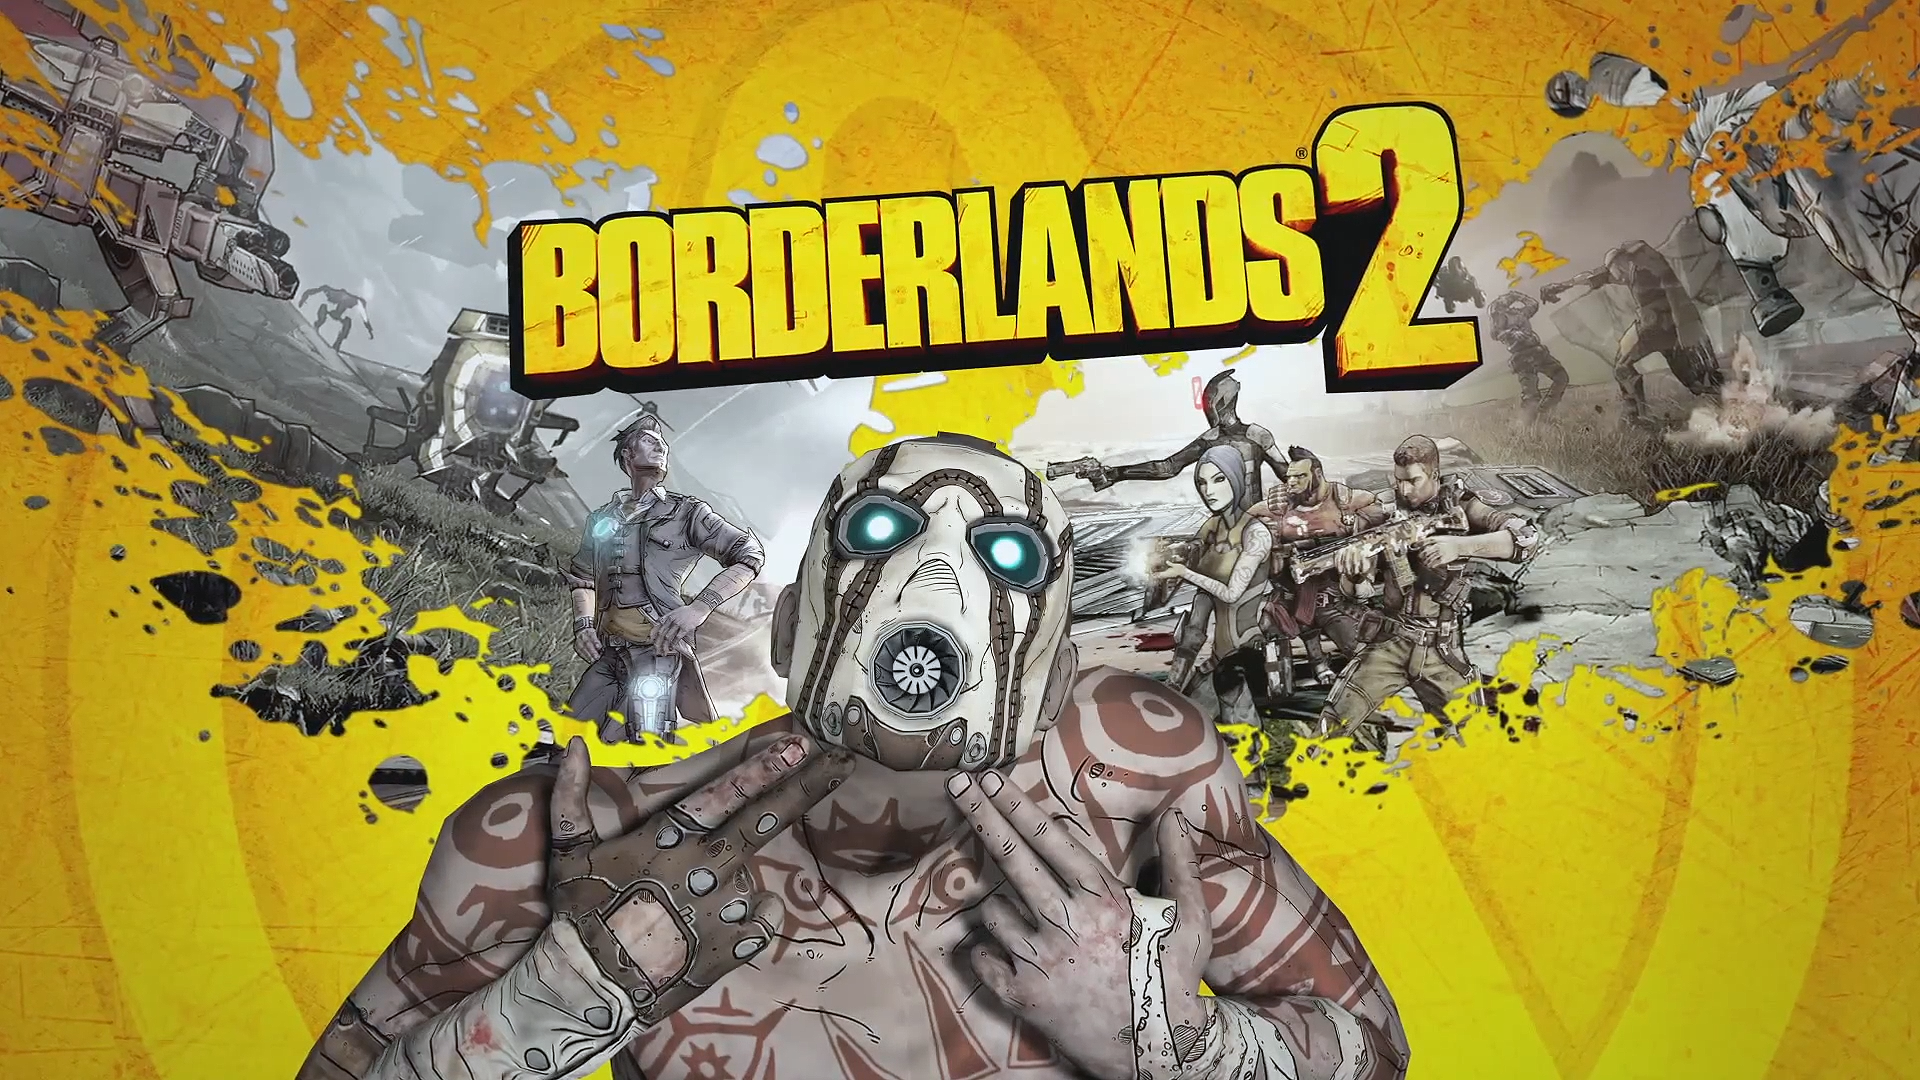 borderlands 2 wallpaper yuiphone borderlands 2 logo